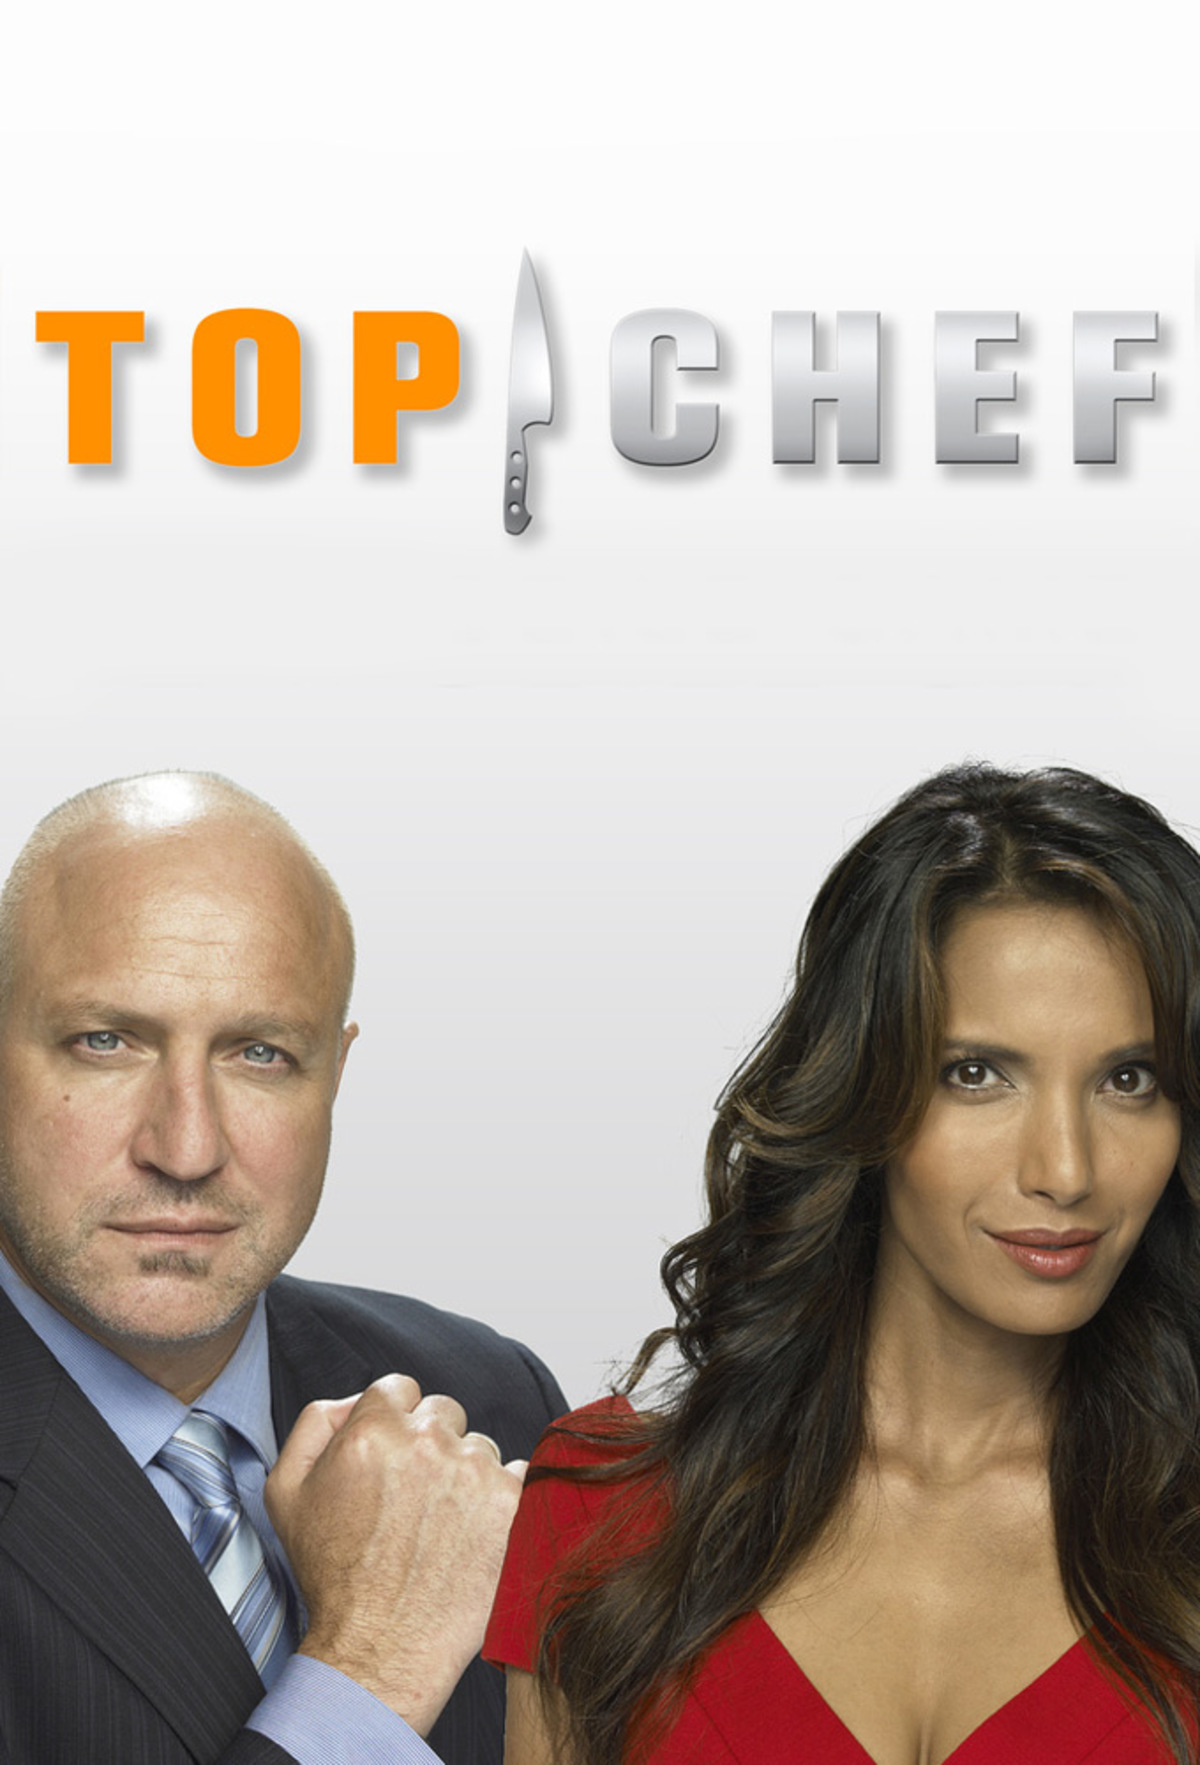 Top Chef - Season 17 Episode 2 - The Jonathan Gold Standard